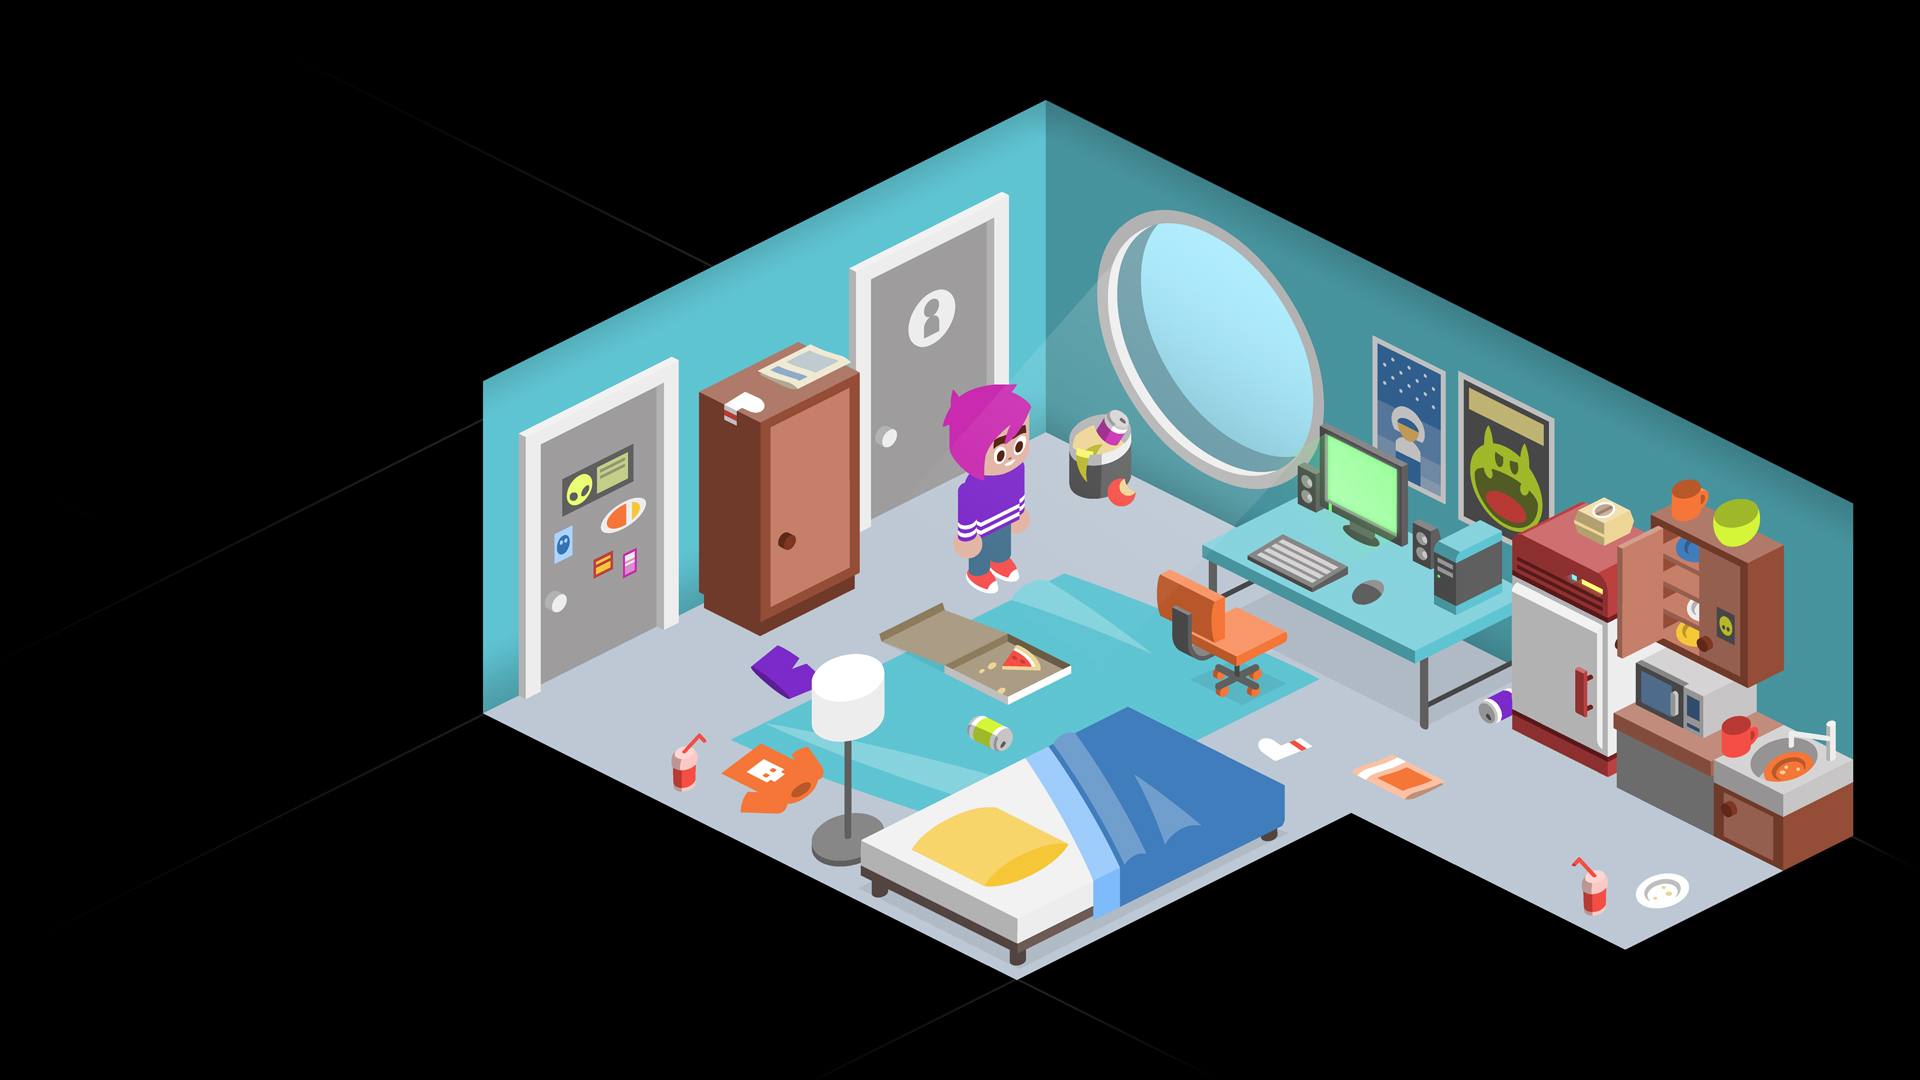 wip new room design